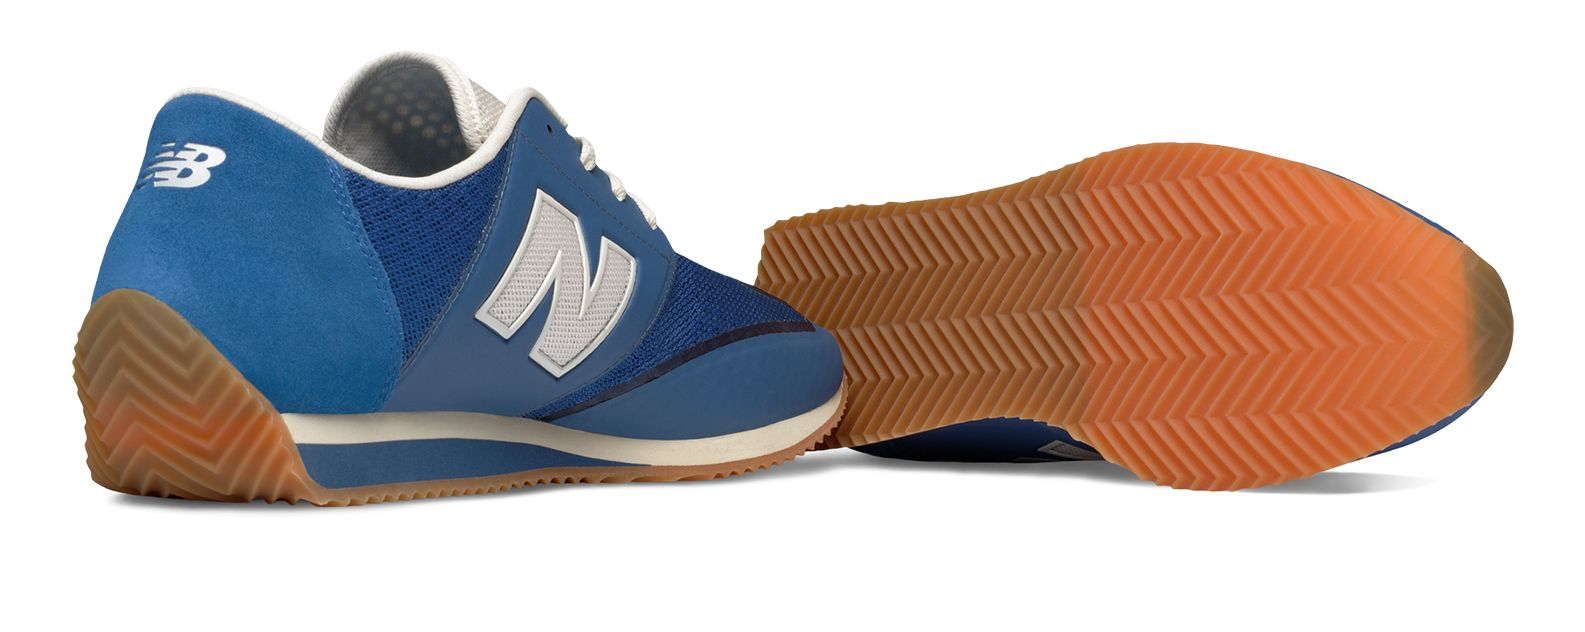 New Balance White 320 Re-engineered 320 Re-engineered for men